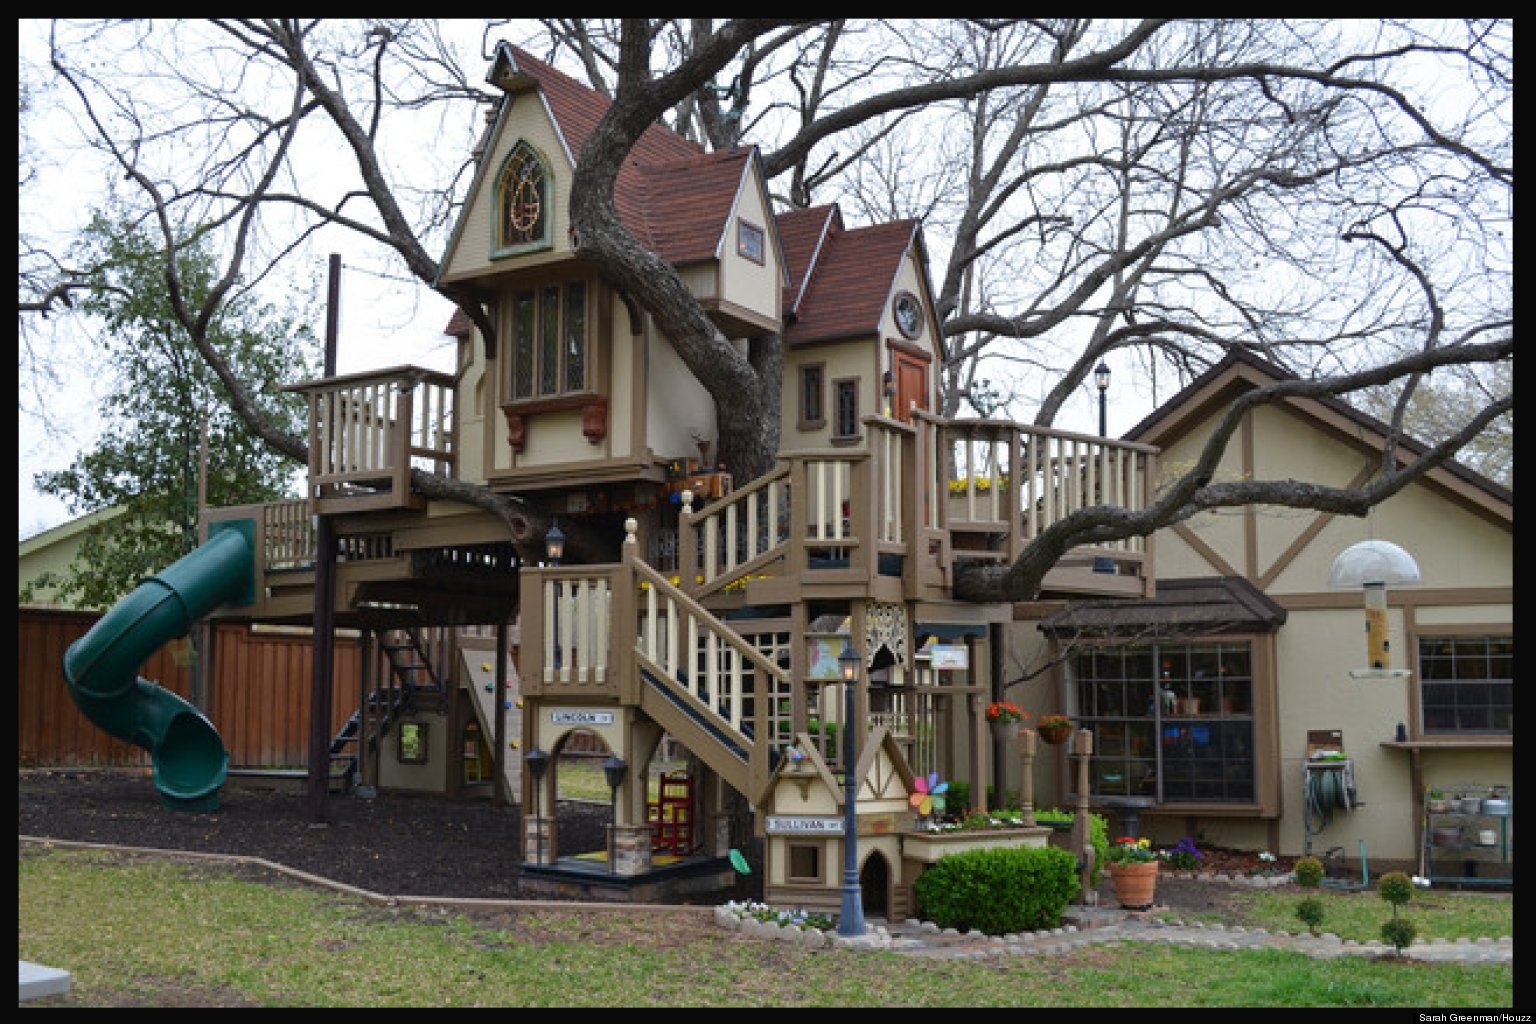 Grandparents Build Amazing Treehouse For Grandchildren